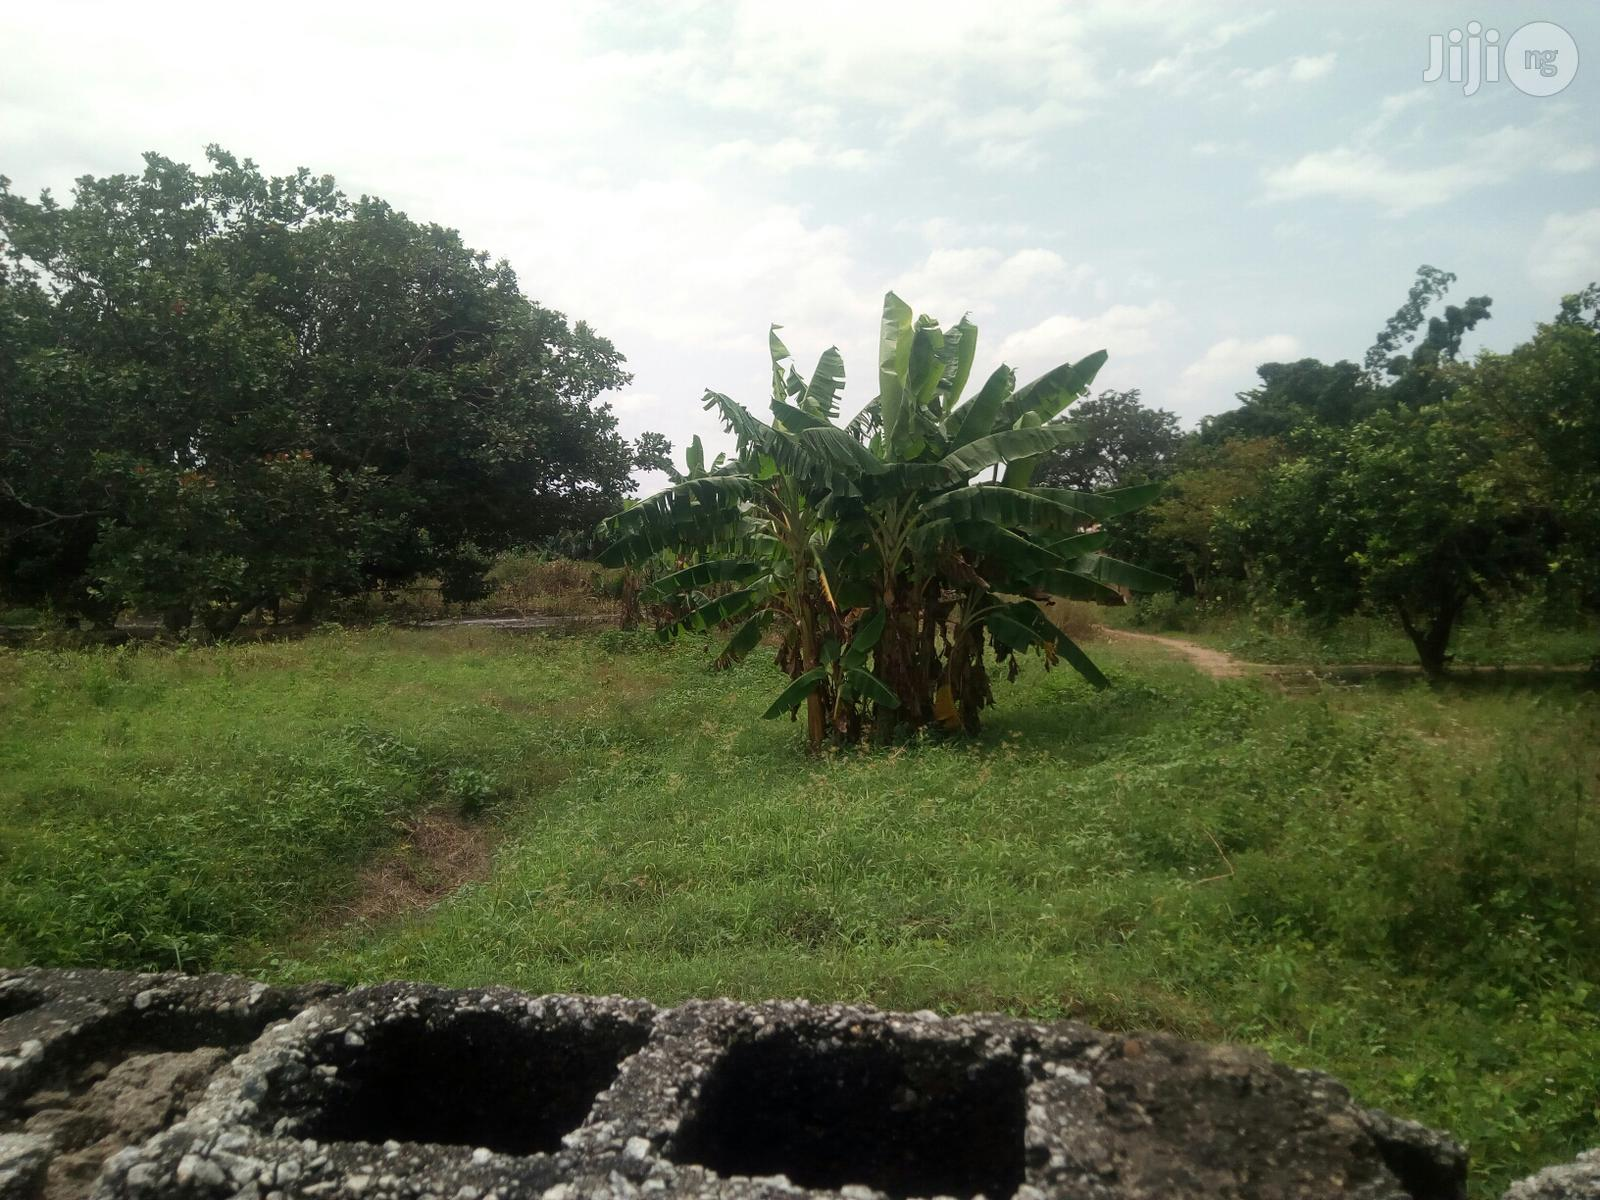 Commercial Plot of 1.8hecters With Existing Structures at Kuje, Abuja | Land & Plots For Sale for sale in Kuje, Abuja (FCT) State, Nigeria